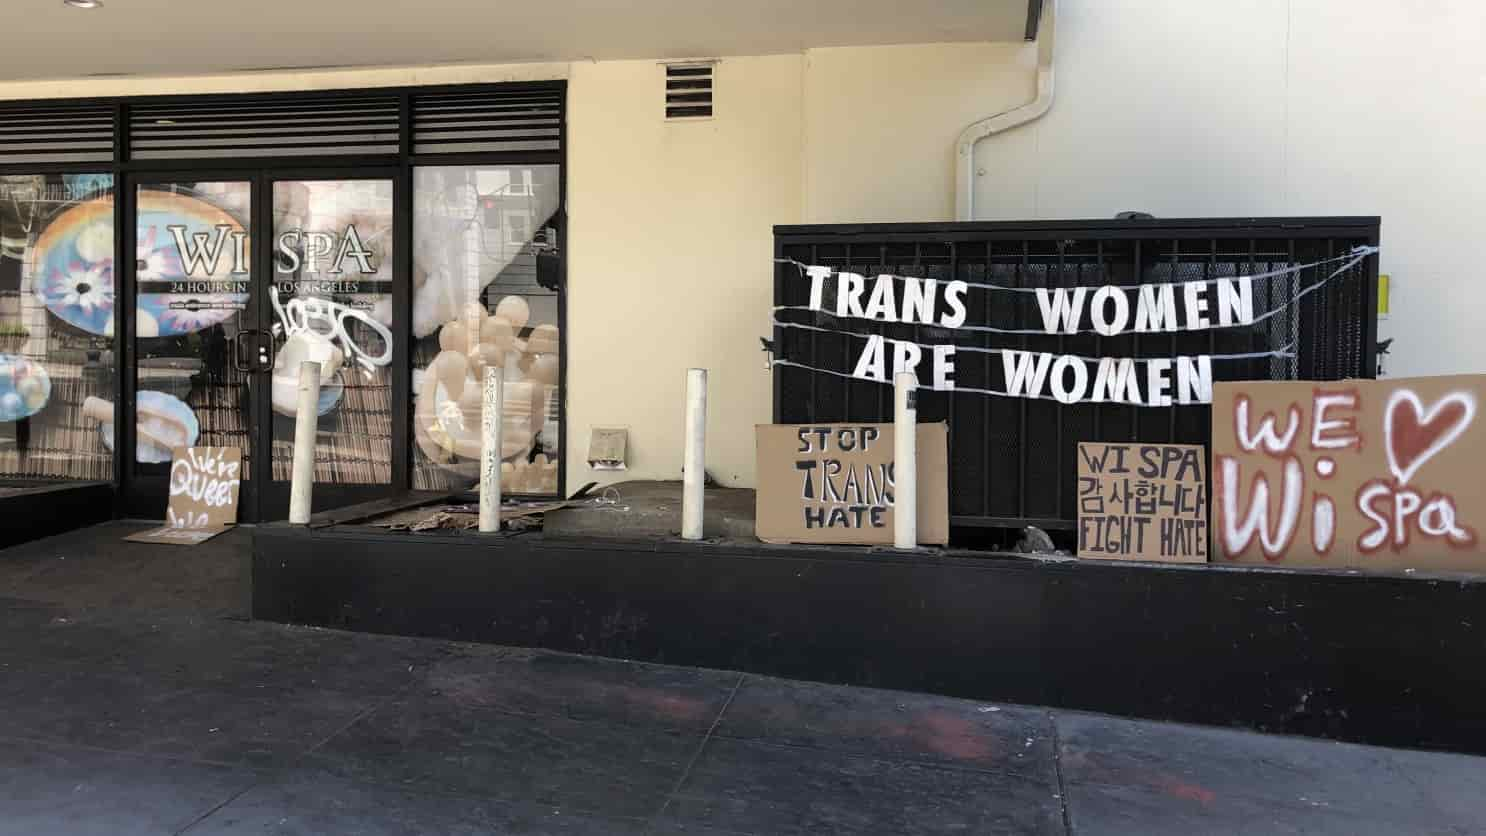 Susanna Rustin Believes That Women and Trans Rights are Disappearing